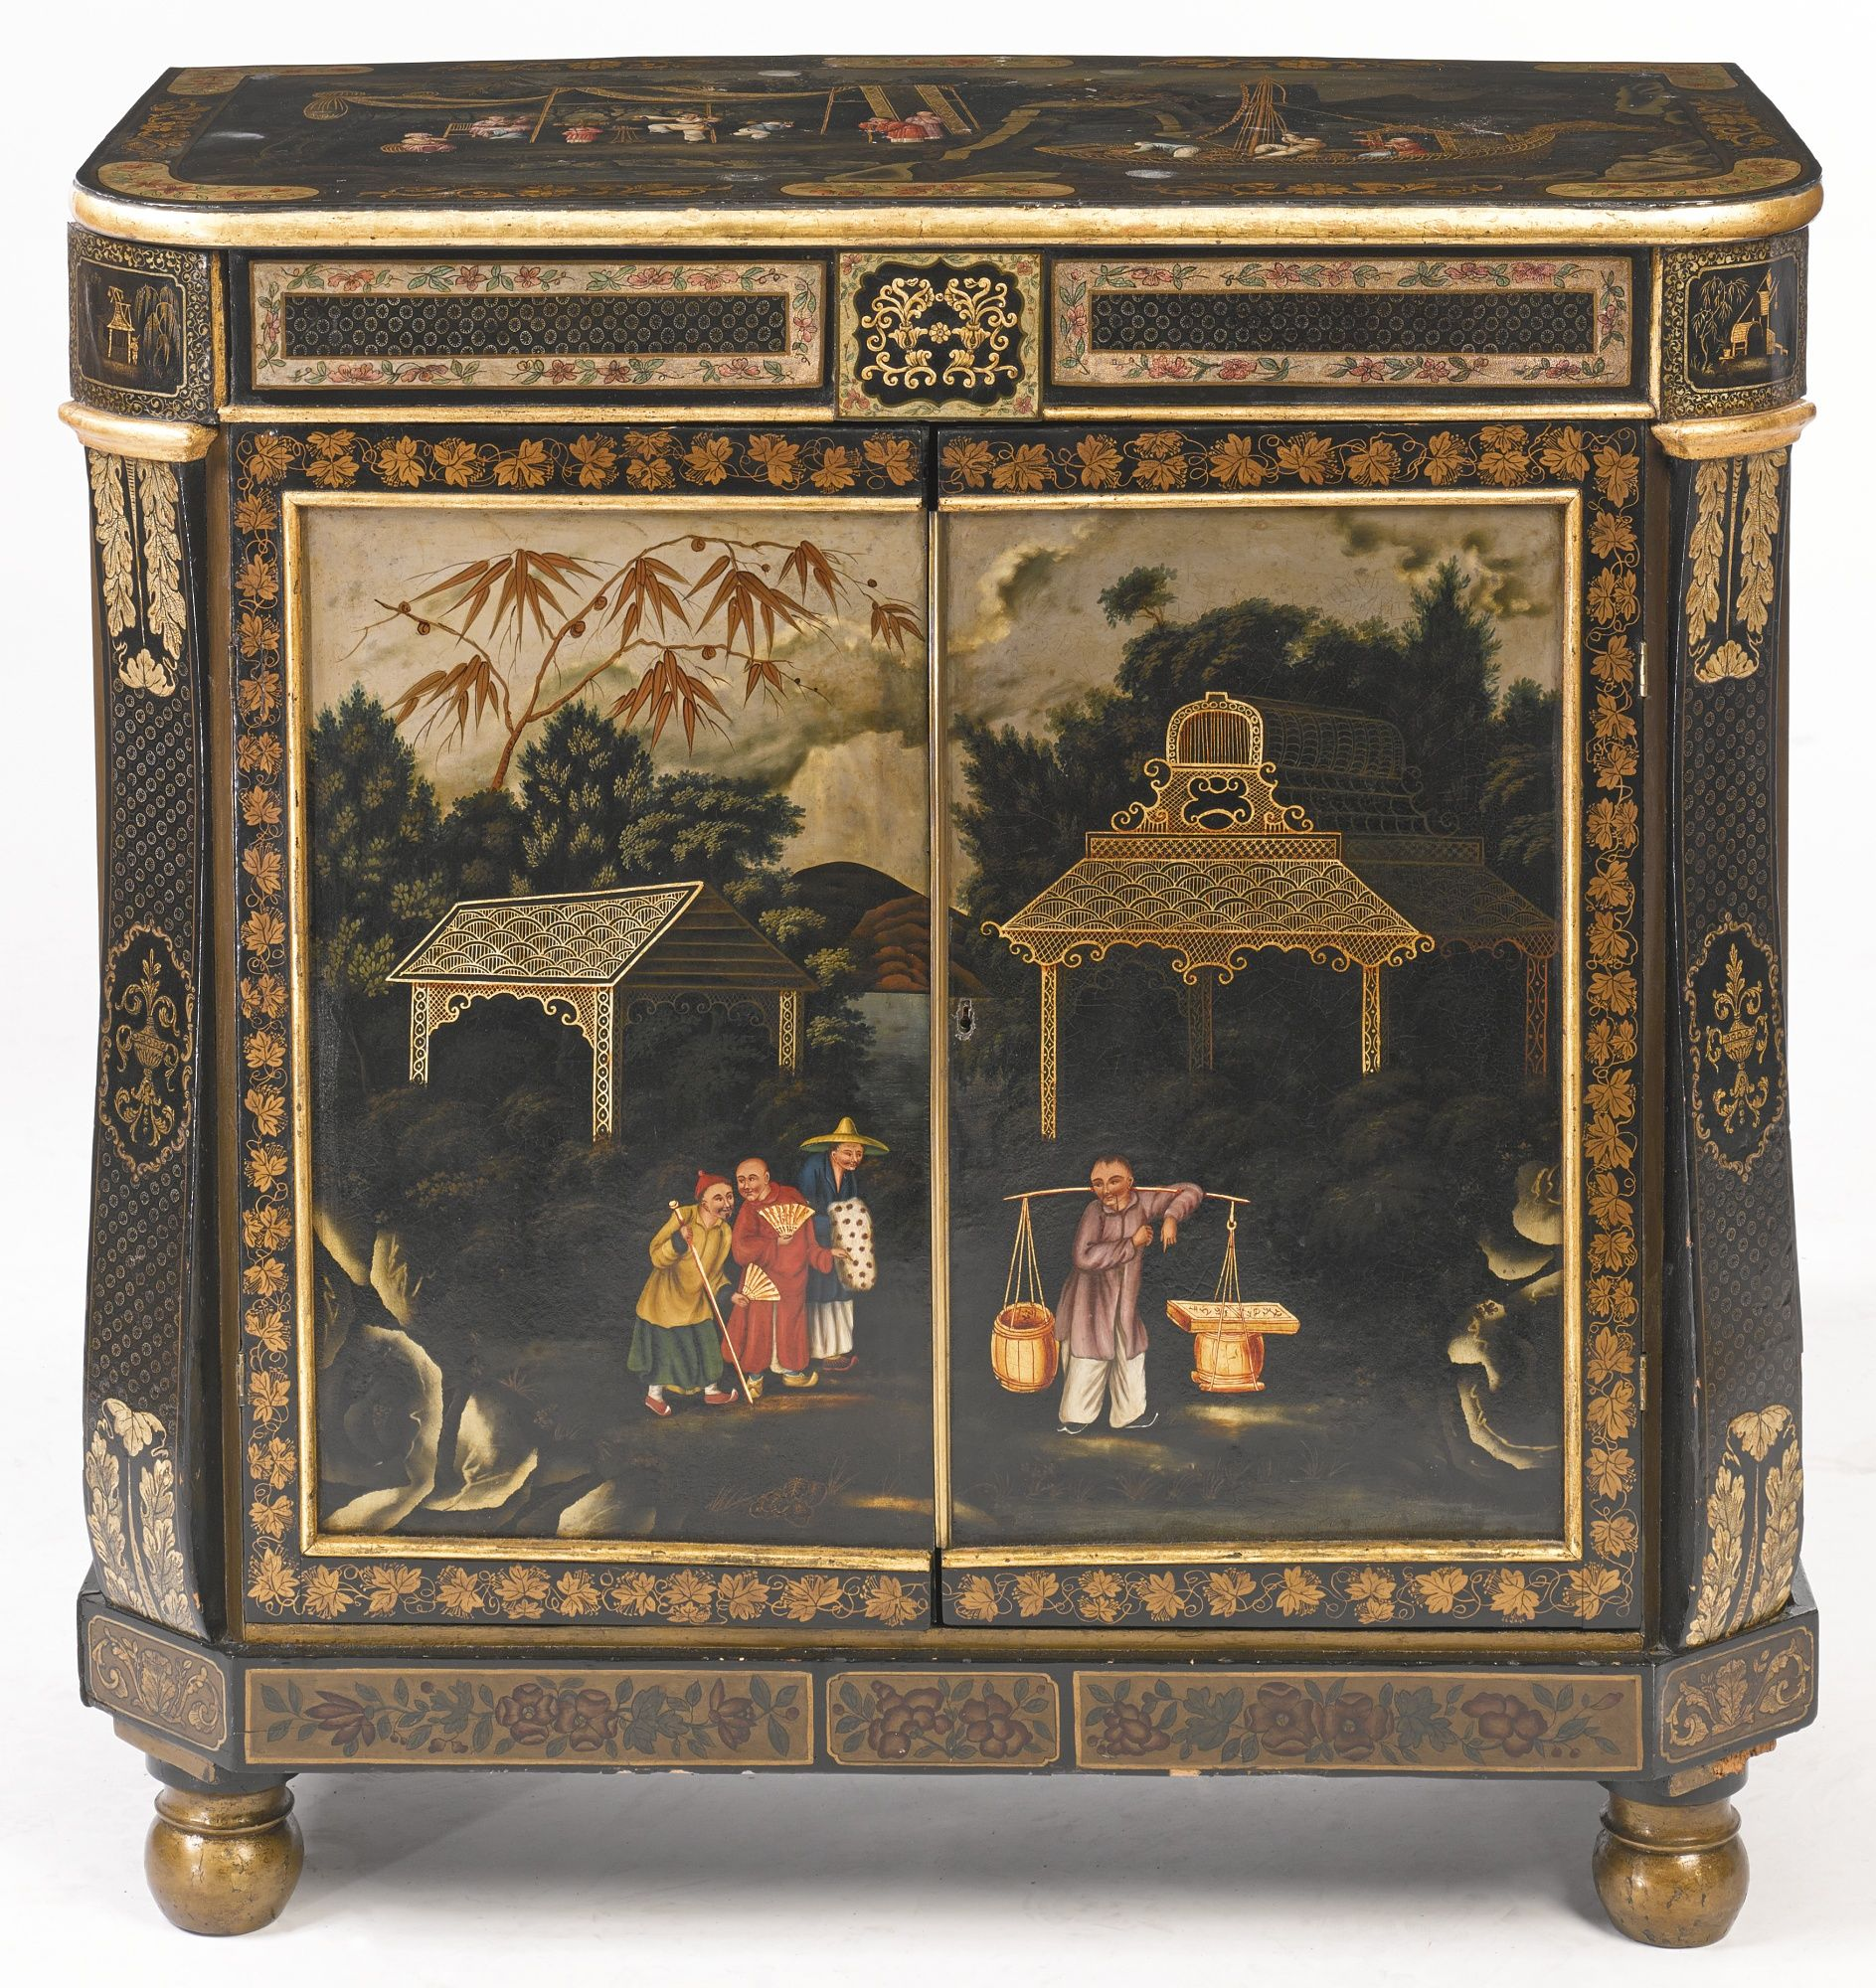 Muebles Orientales Antiguos A Fine And Rare Regency Polychrome Japanned Chinoiserie